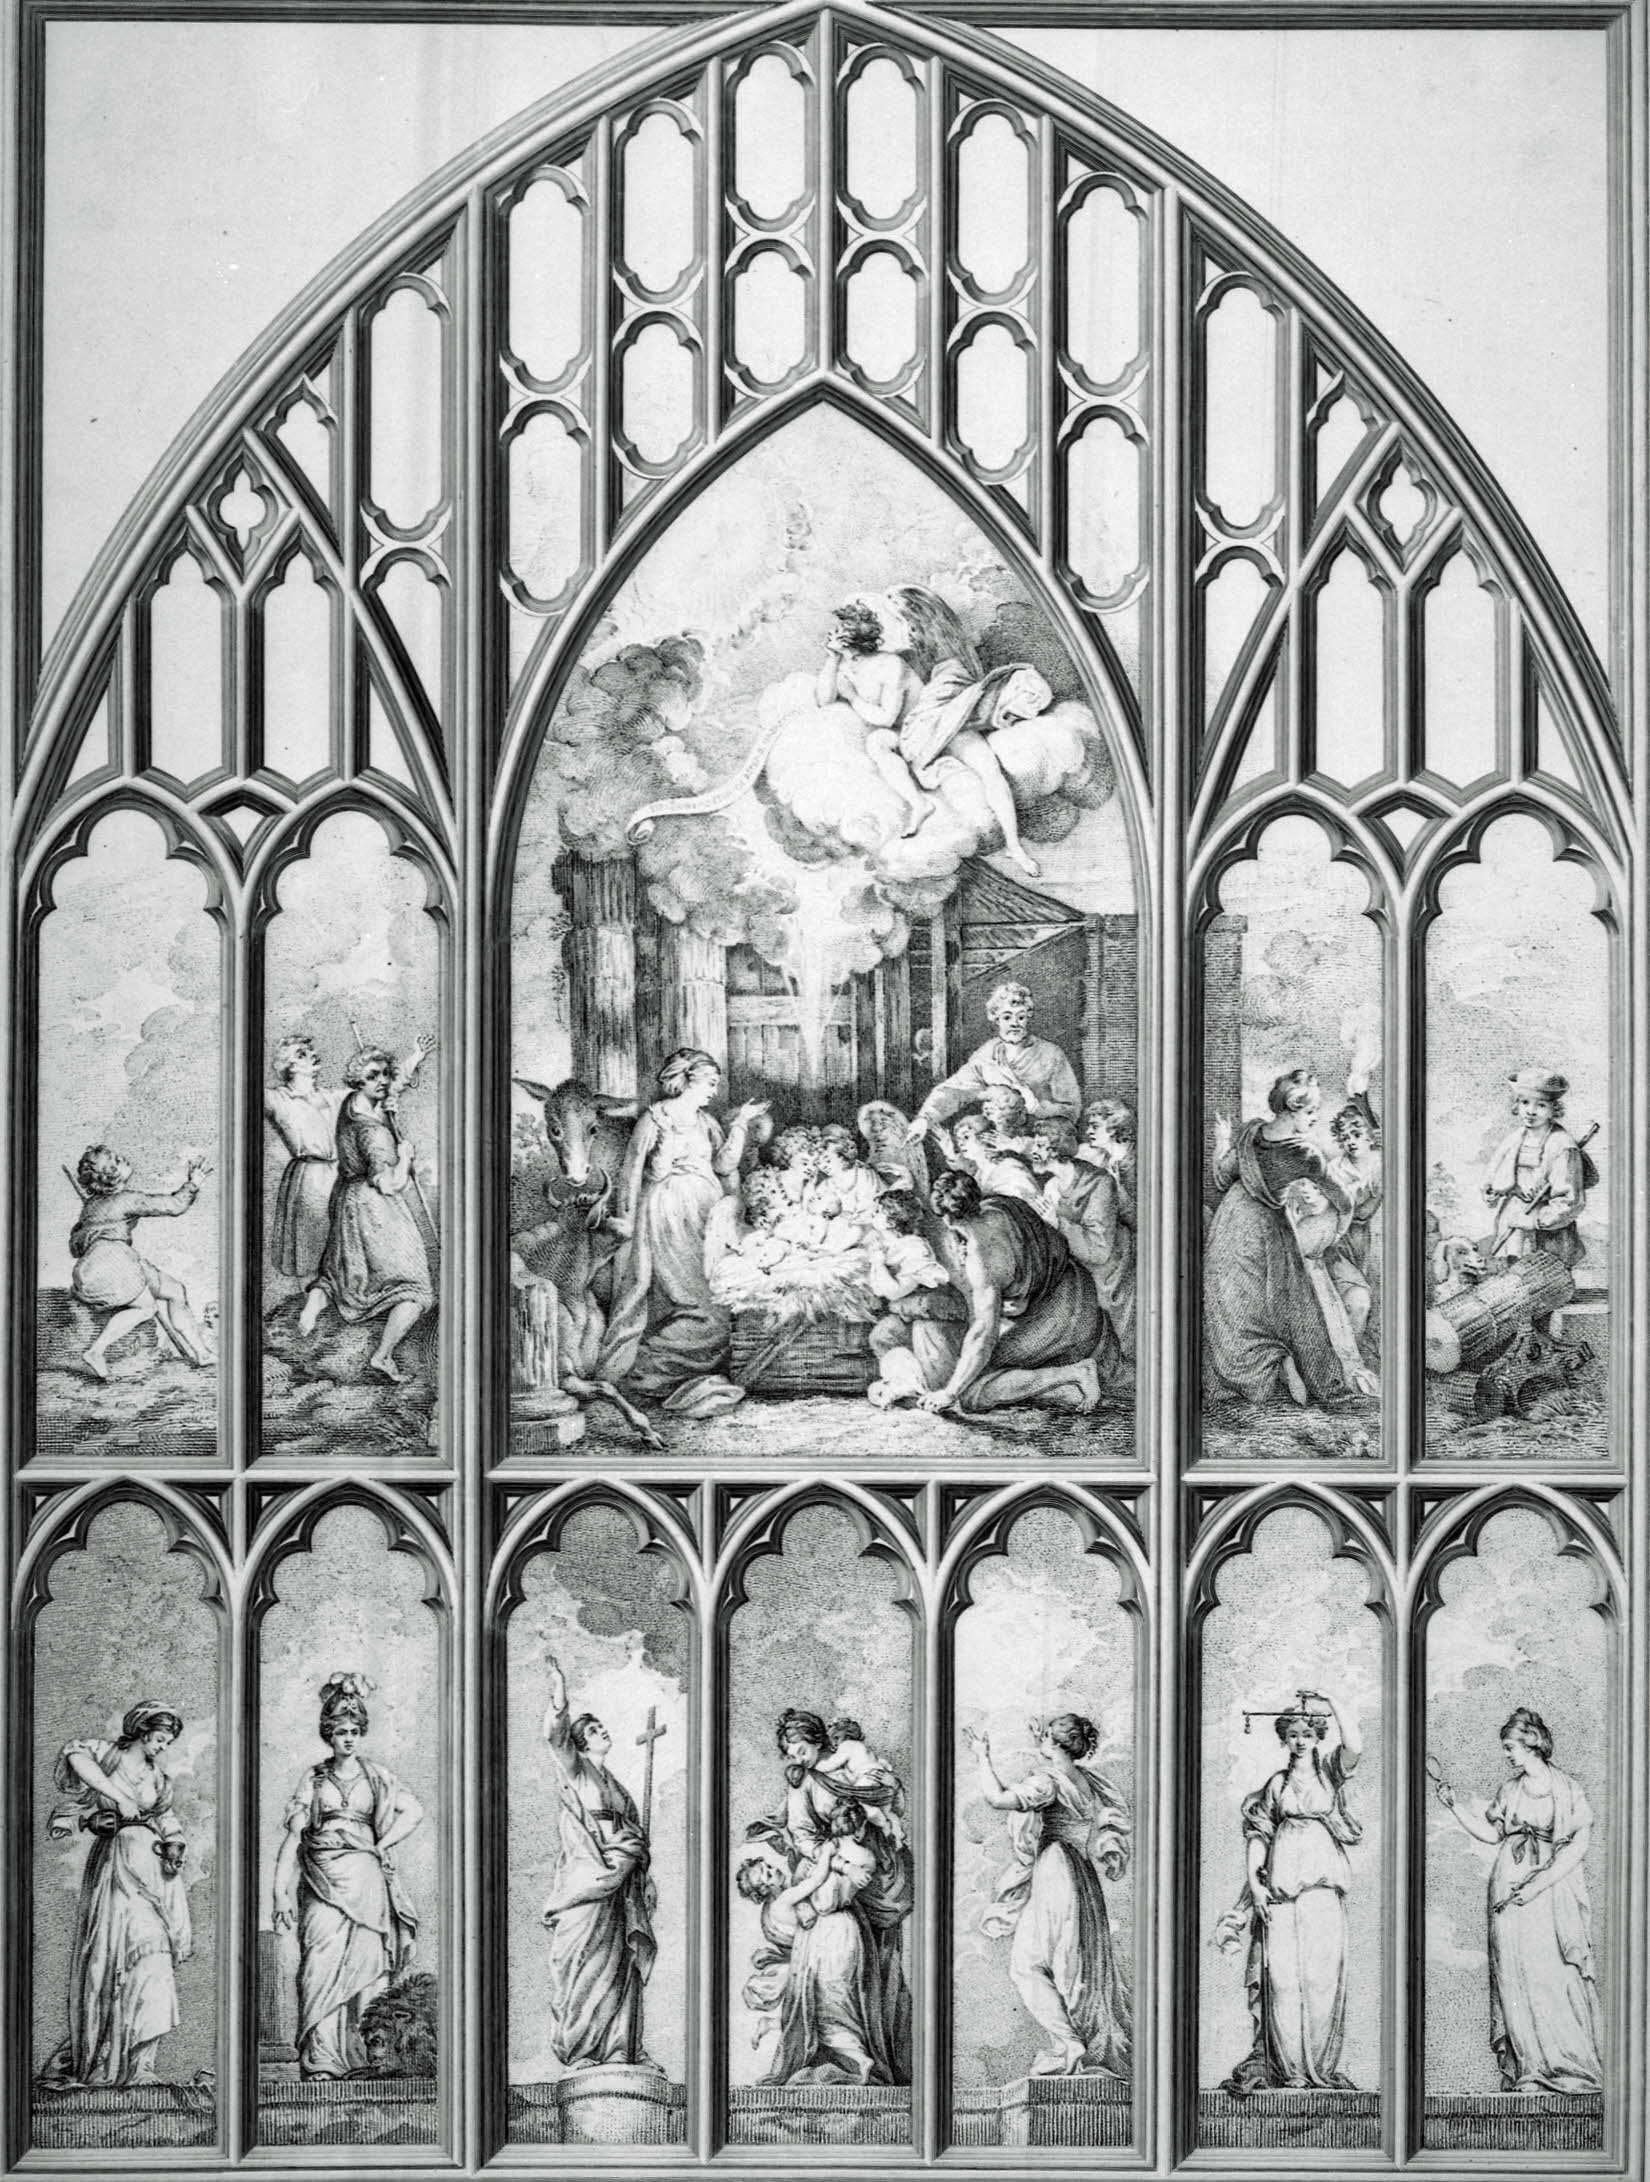 The West Window of the Chapel, New College Oxford, 1785